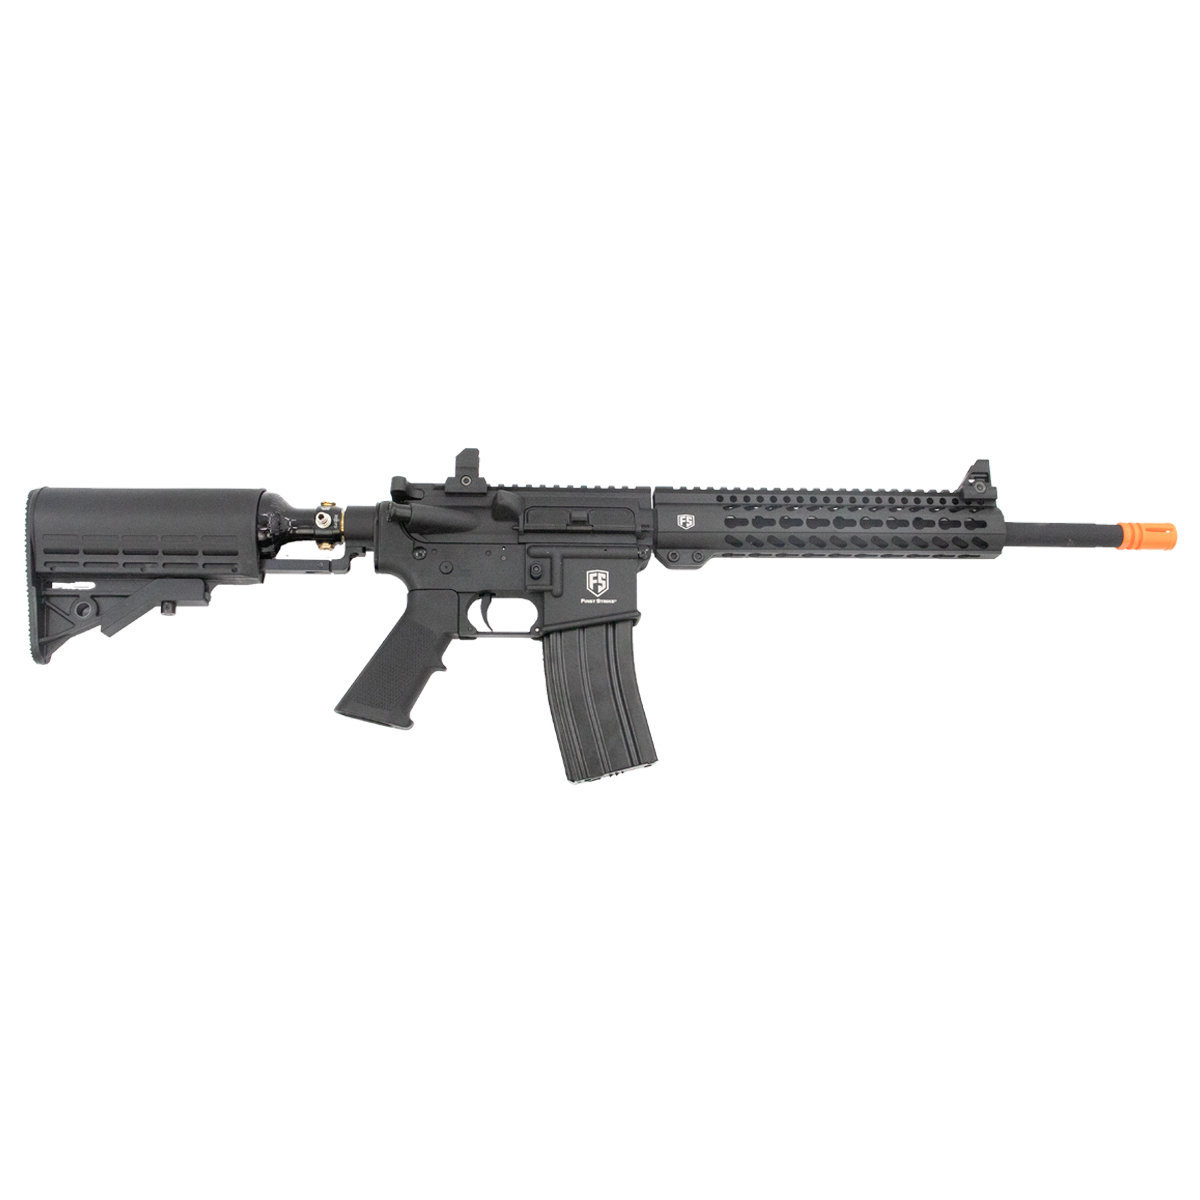 View larger image of First Strike T15A1 Carbine HPA Powered Airsoft Rifle